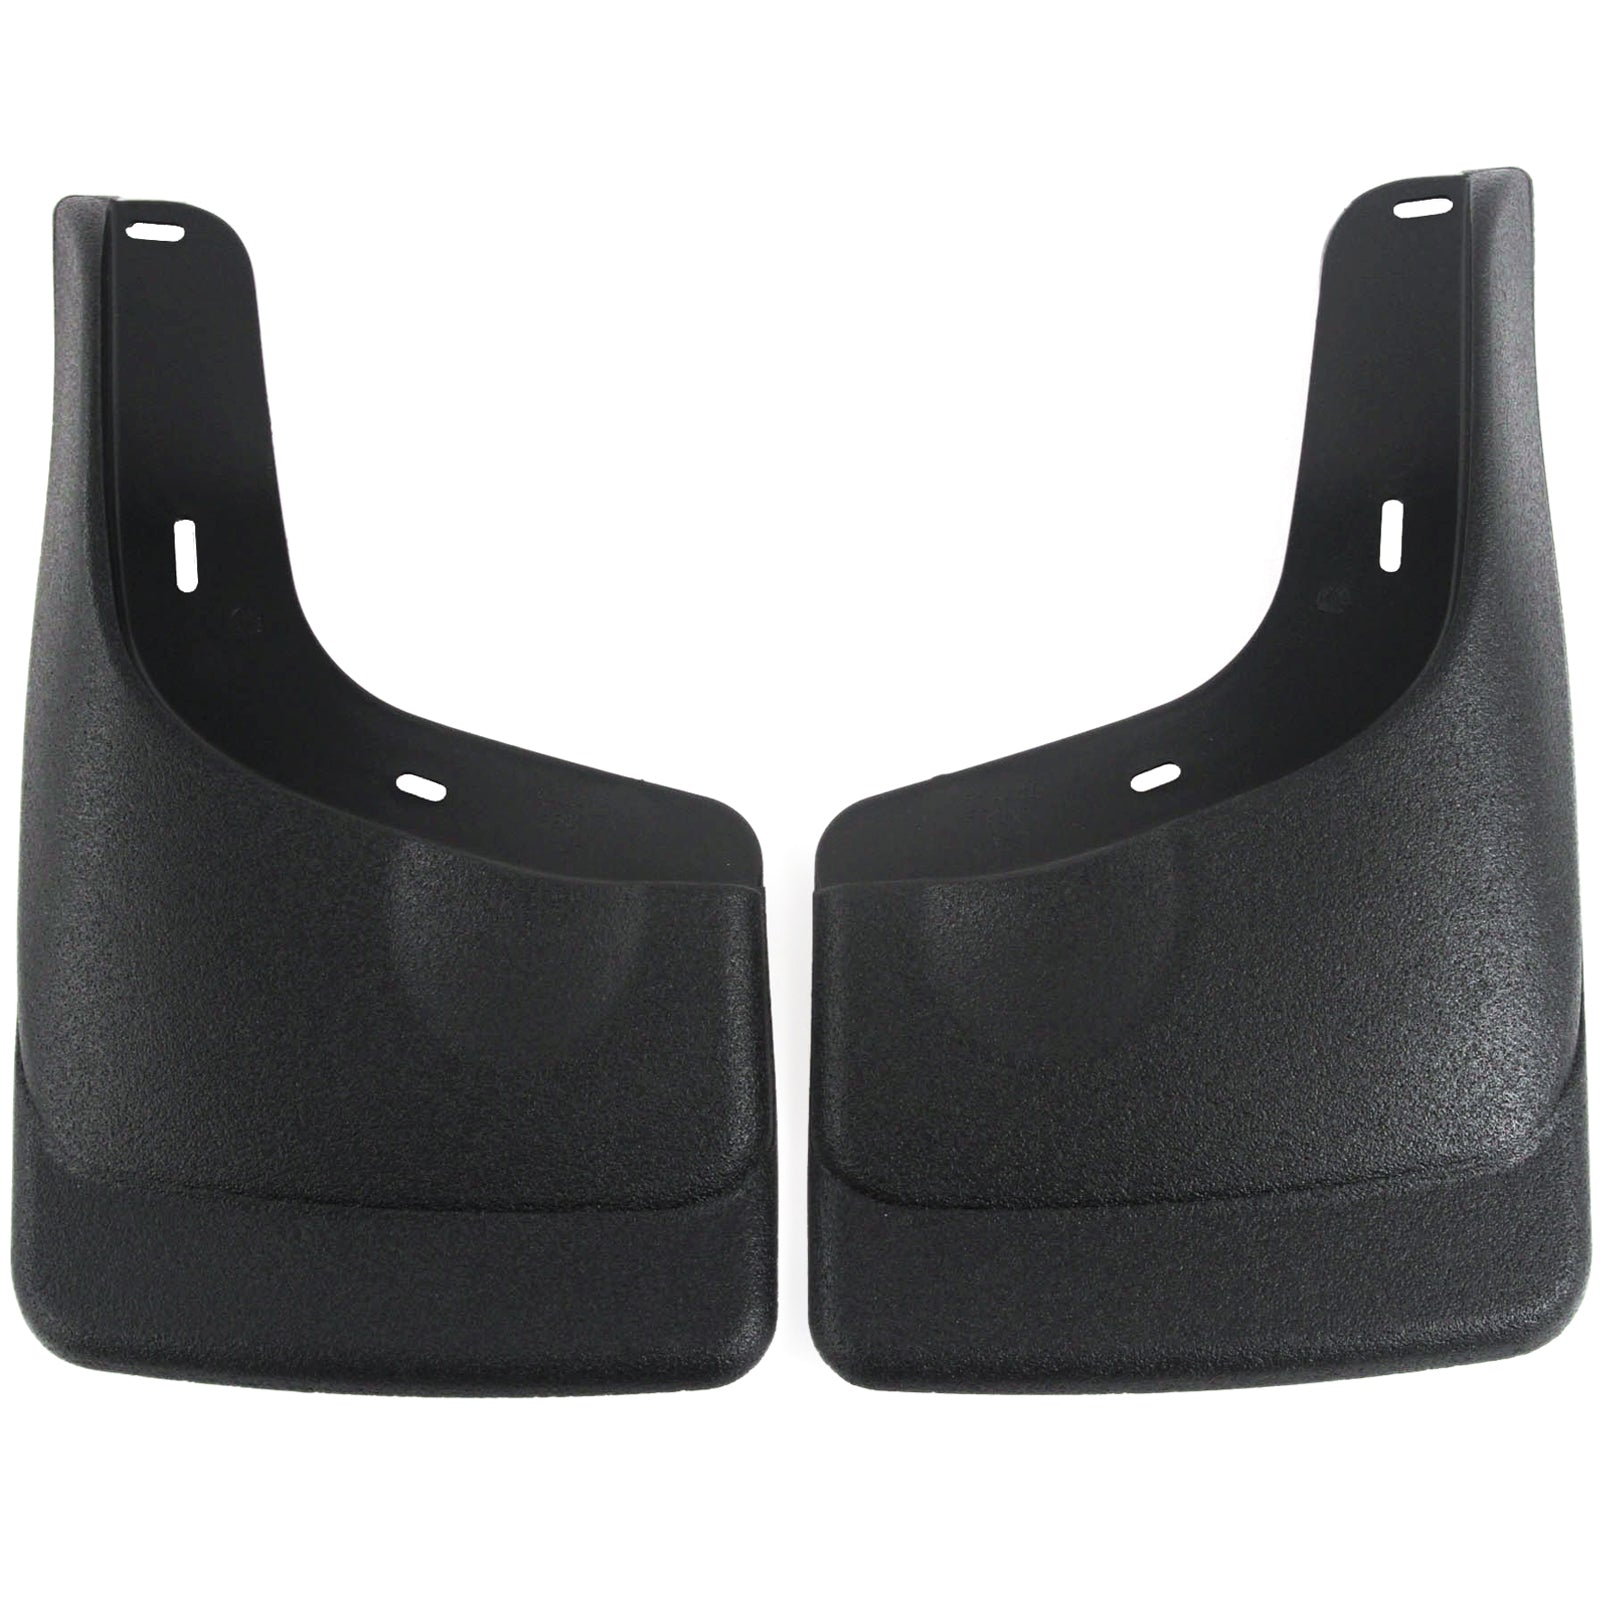 Red Hound Auto 2004-2014 Compatible with Ford F-150 Mud Flaps Guards Splash Front Molded 2pc Set (with Fender Flares)